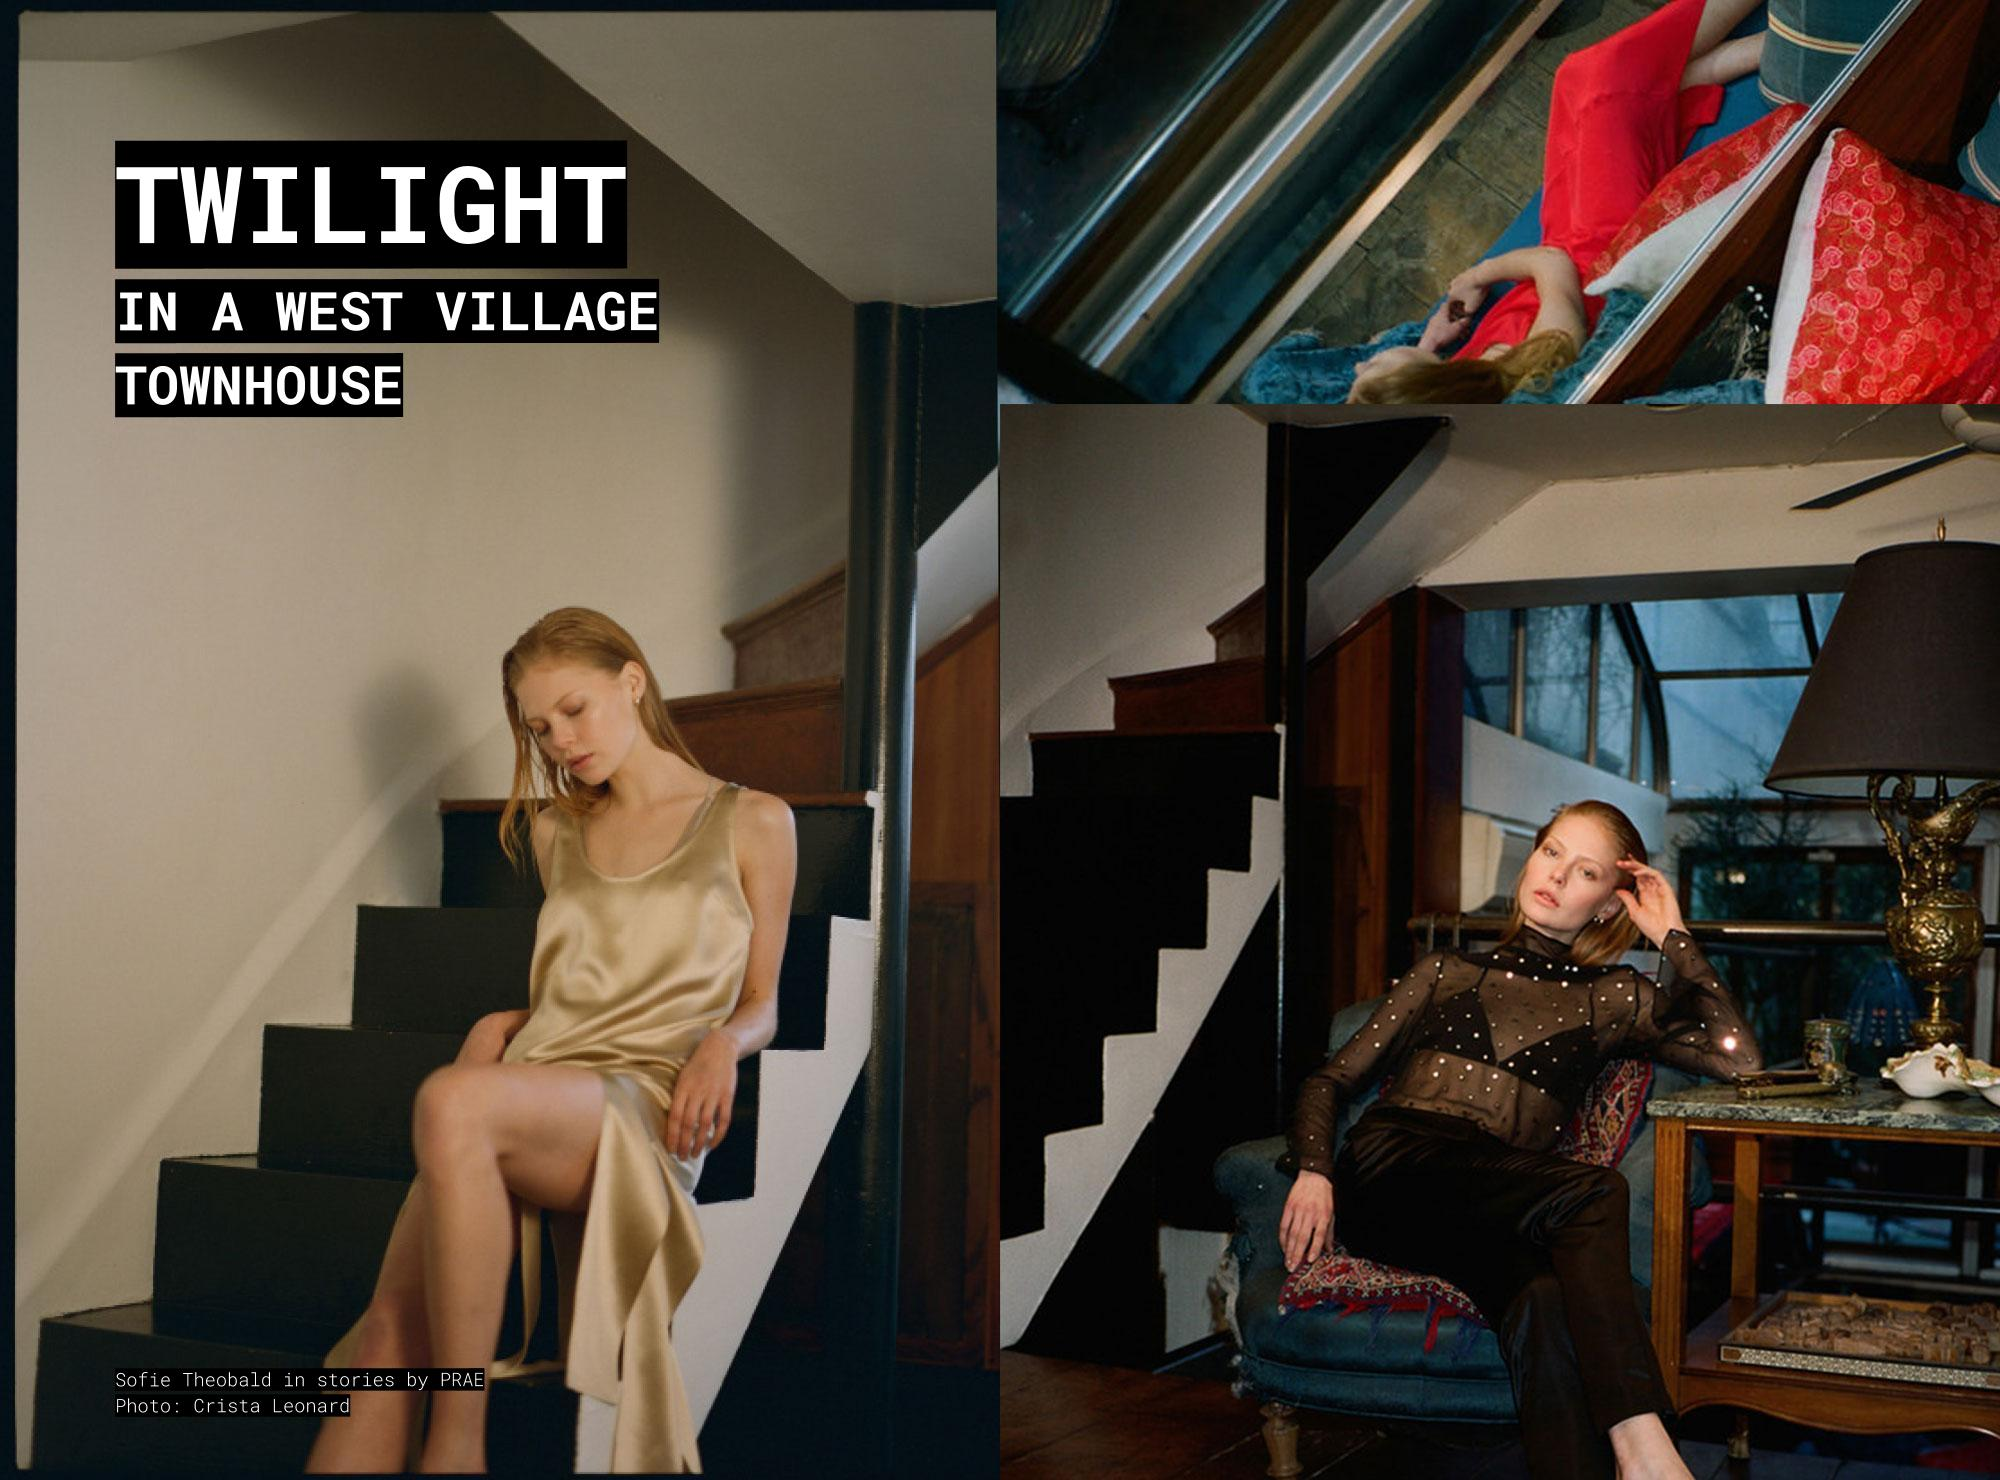 PRAE NYC STORIES: Twilight in a west village townhouse, Sofie Theobald by Crista Leonard